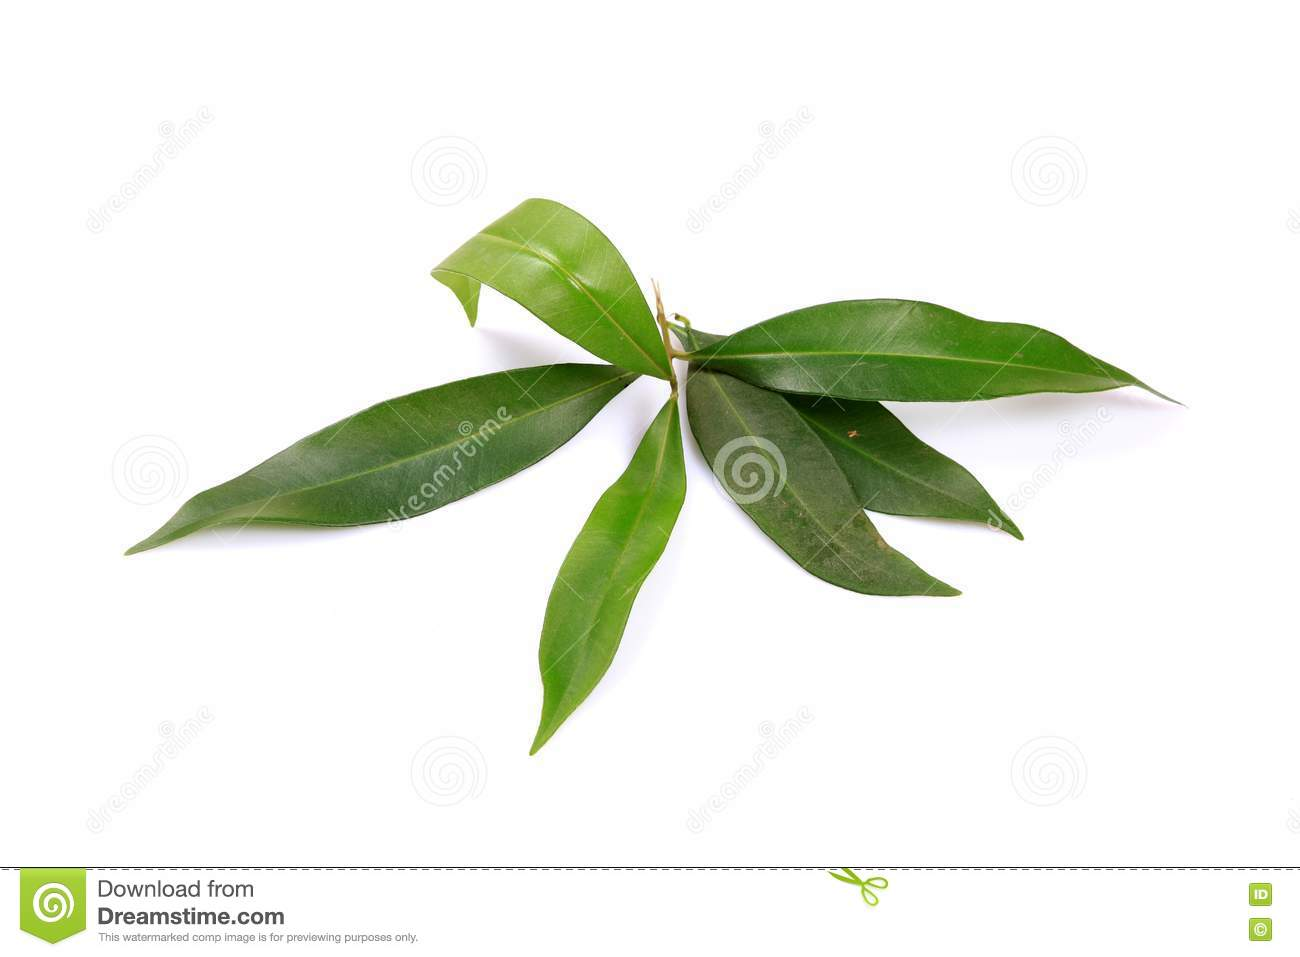 Jamun Leaves Royalty Free Stock Images - Image: 17190419